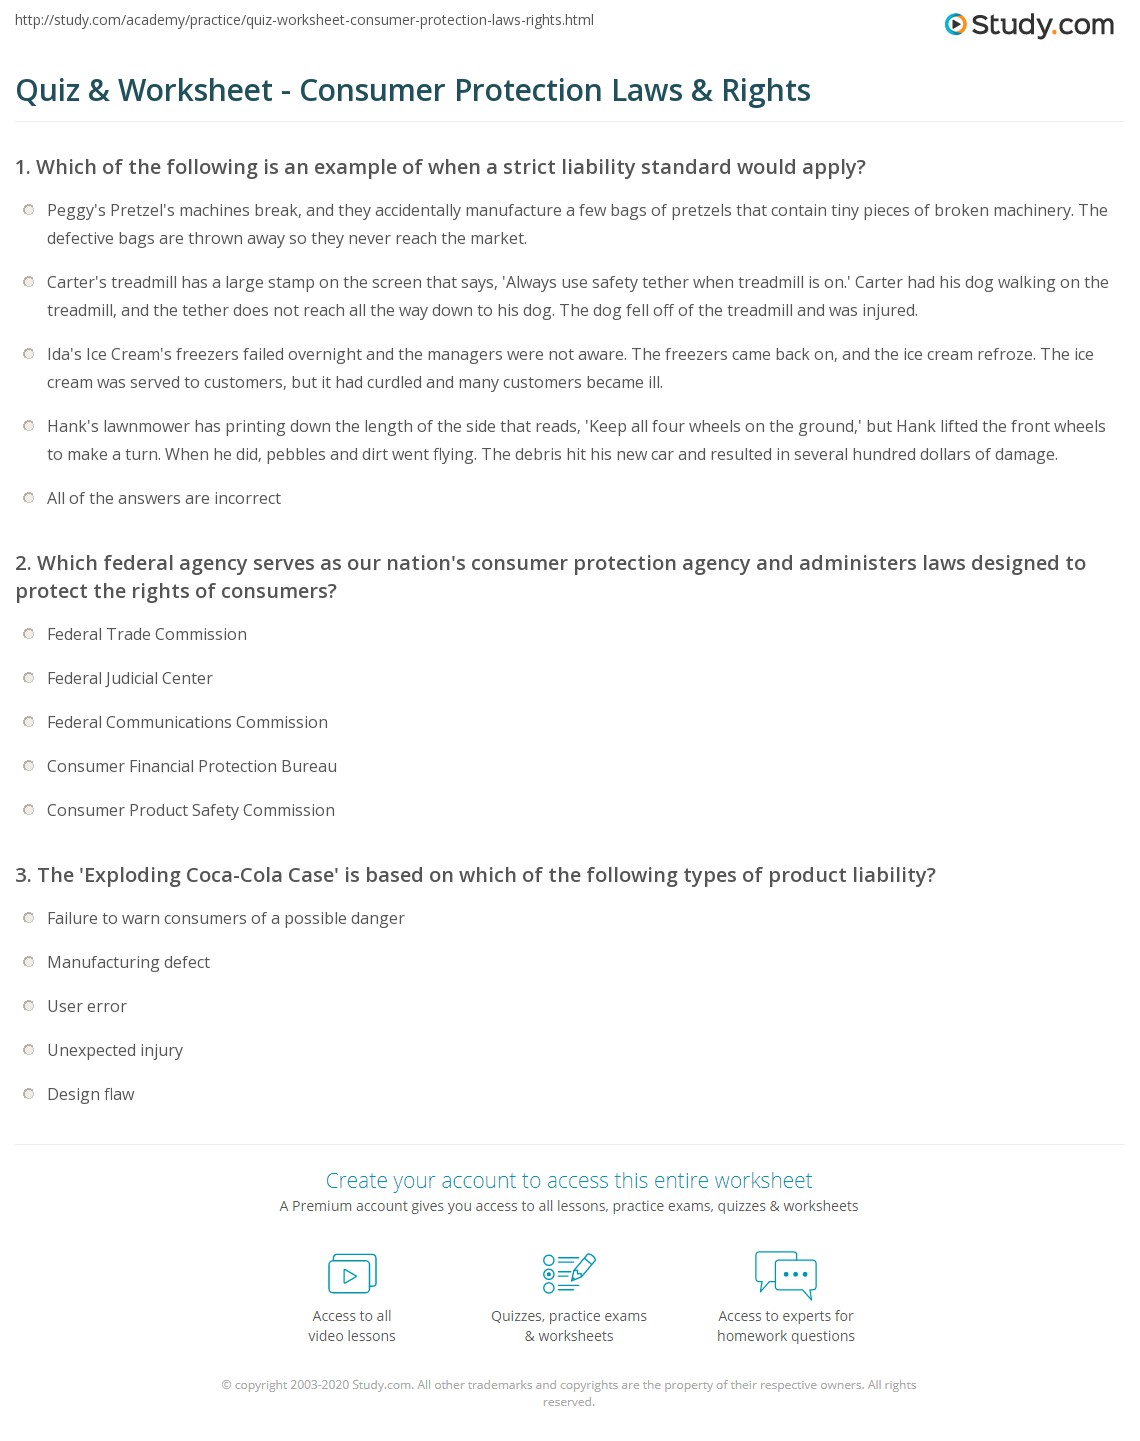 Print What Is Consumer Protection? - Product Liability, Laws & Rights  Worksheet